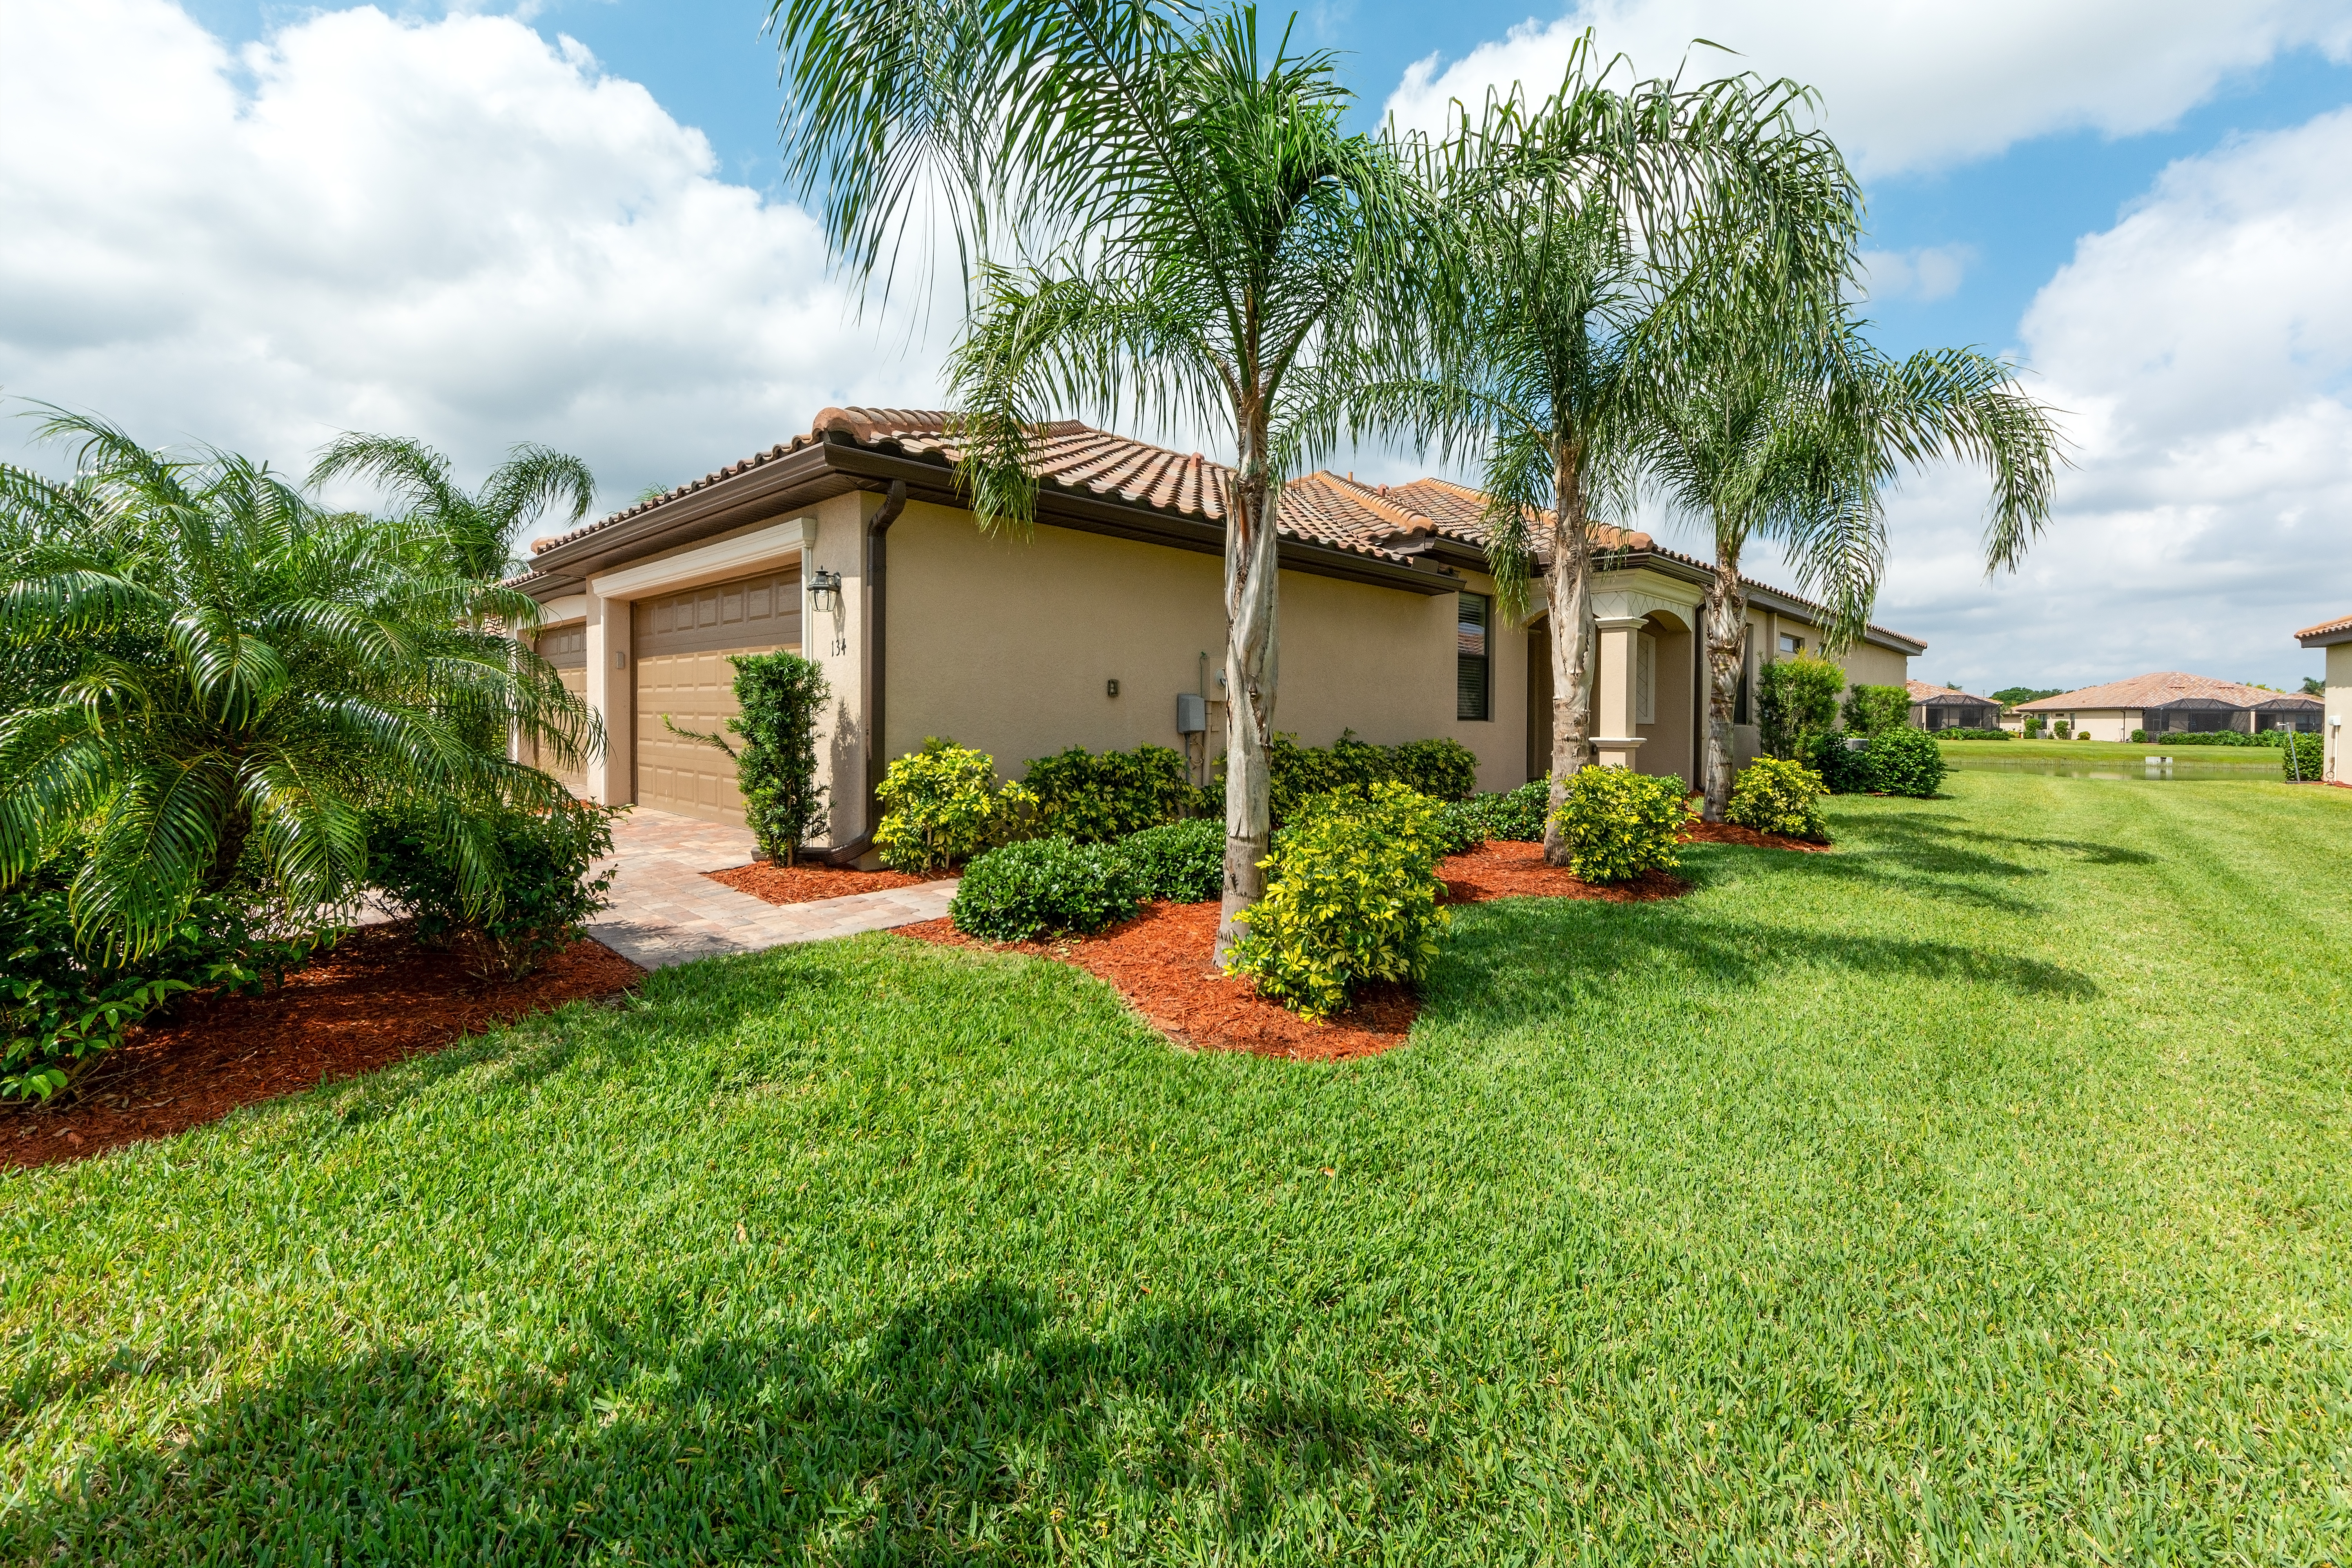 A Lovely Home in River Strand Surrounded by Palm Trees